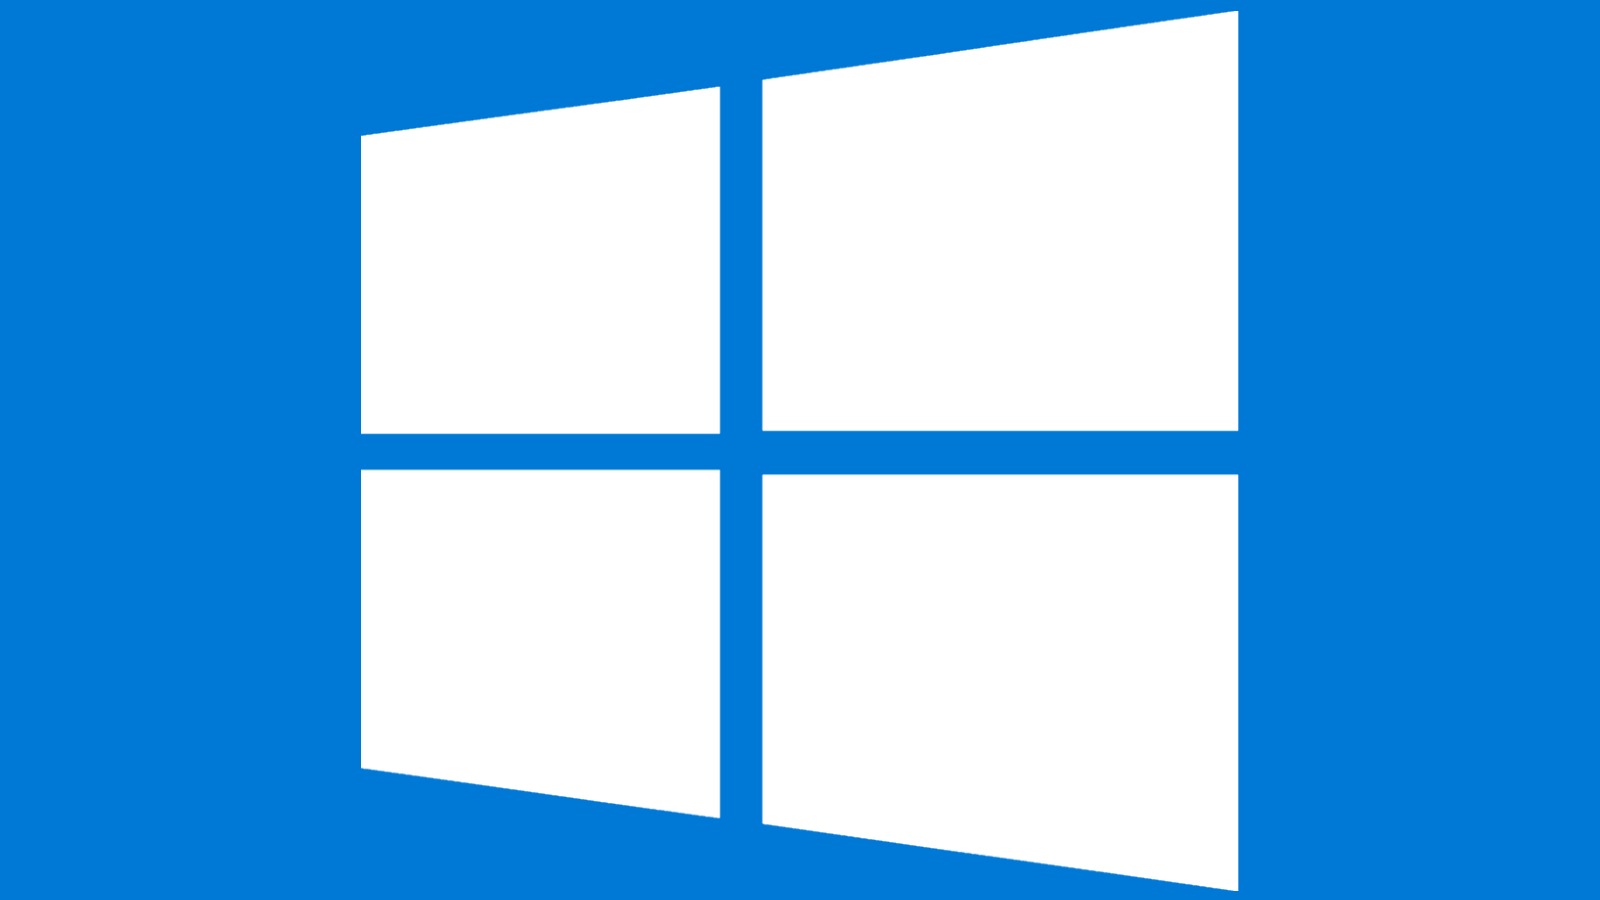 Windows 10 Insider Preview build 18917